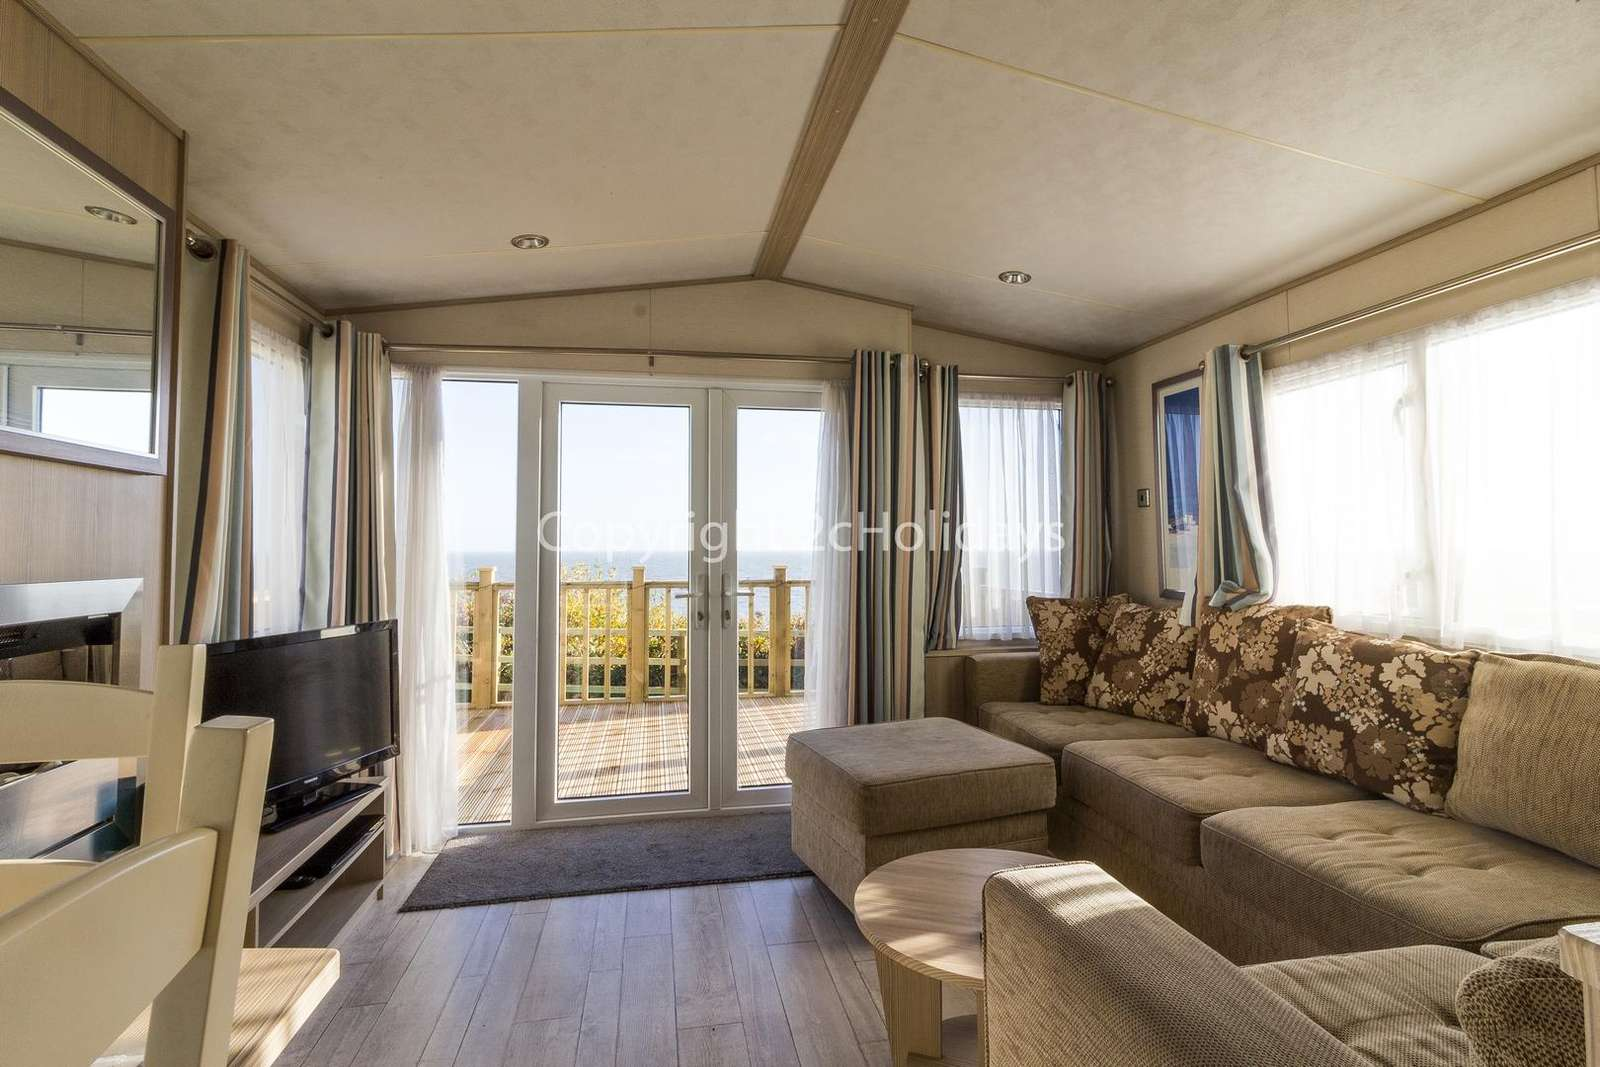 Azure Seas Holiday, in Lowestoft. Perfect for families.